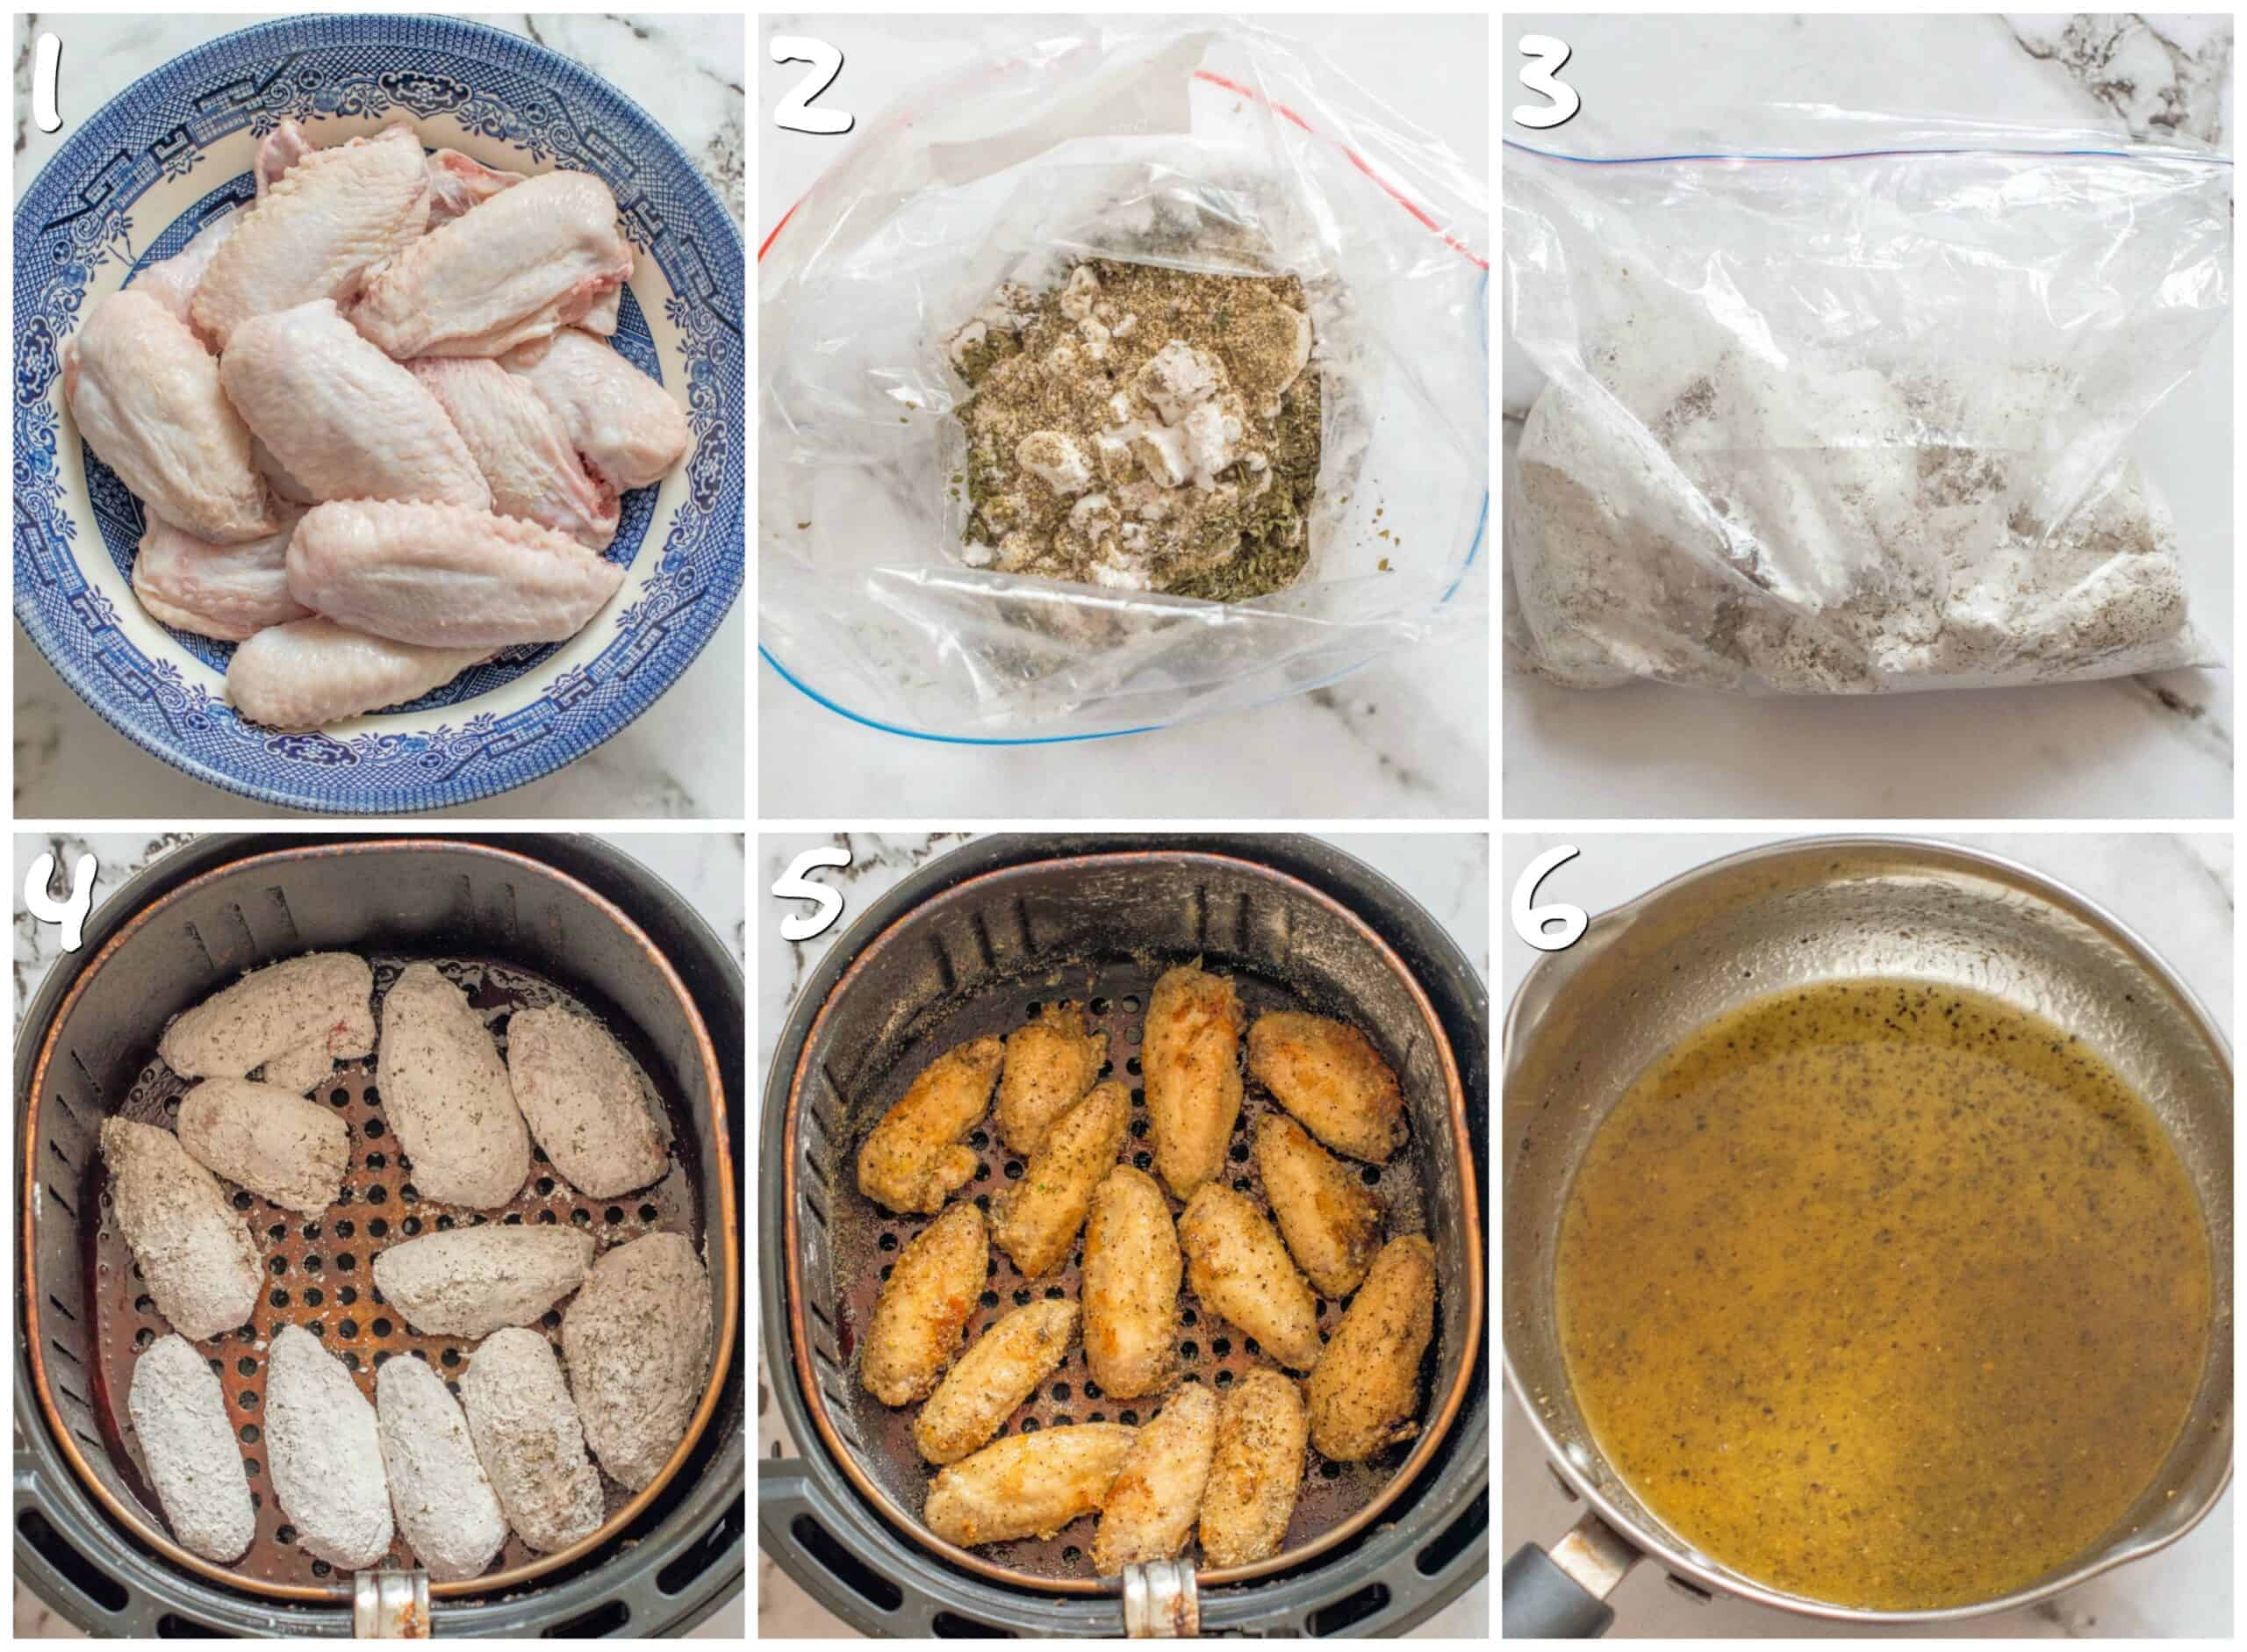 steps 1-6 prepping the chicken